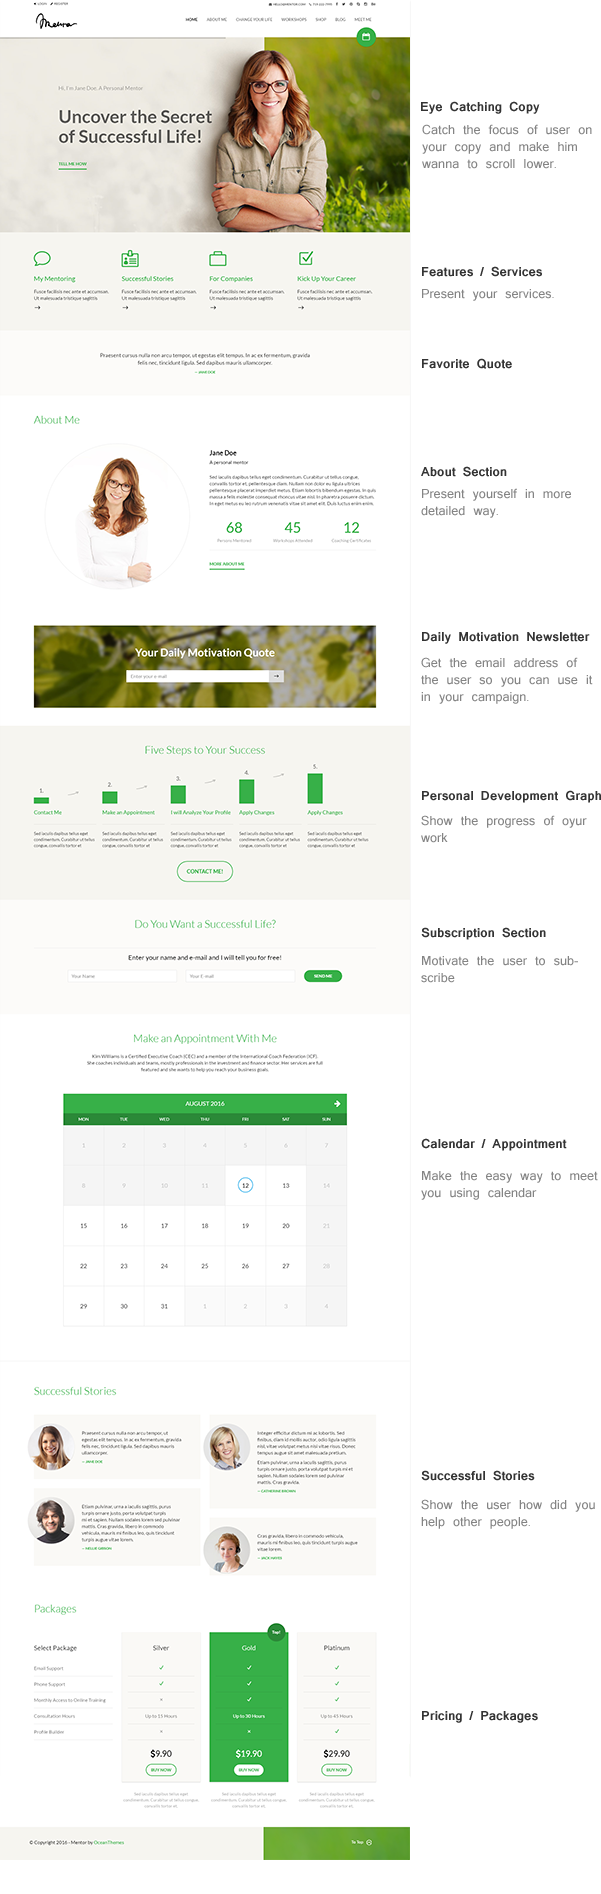 Mentor - Personal Development Coach WordPress Theme for made coaches, trainers, therapist or other profession